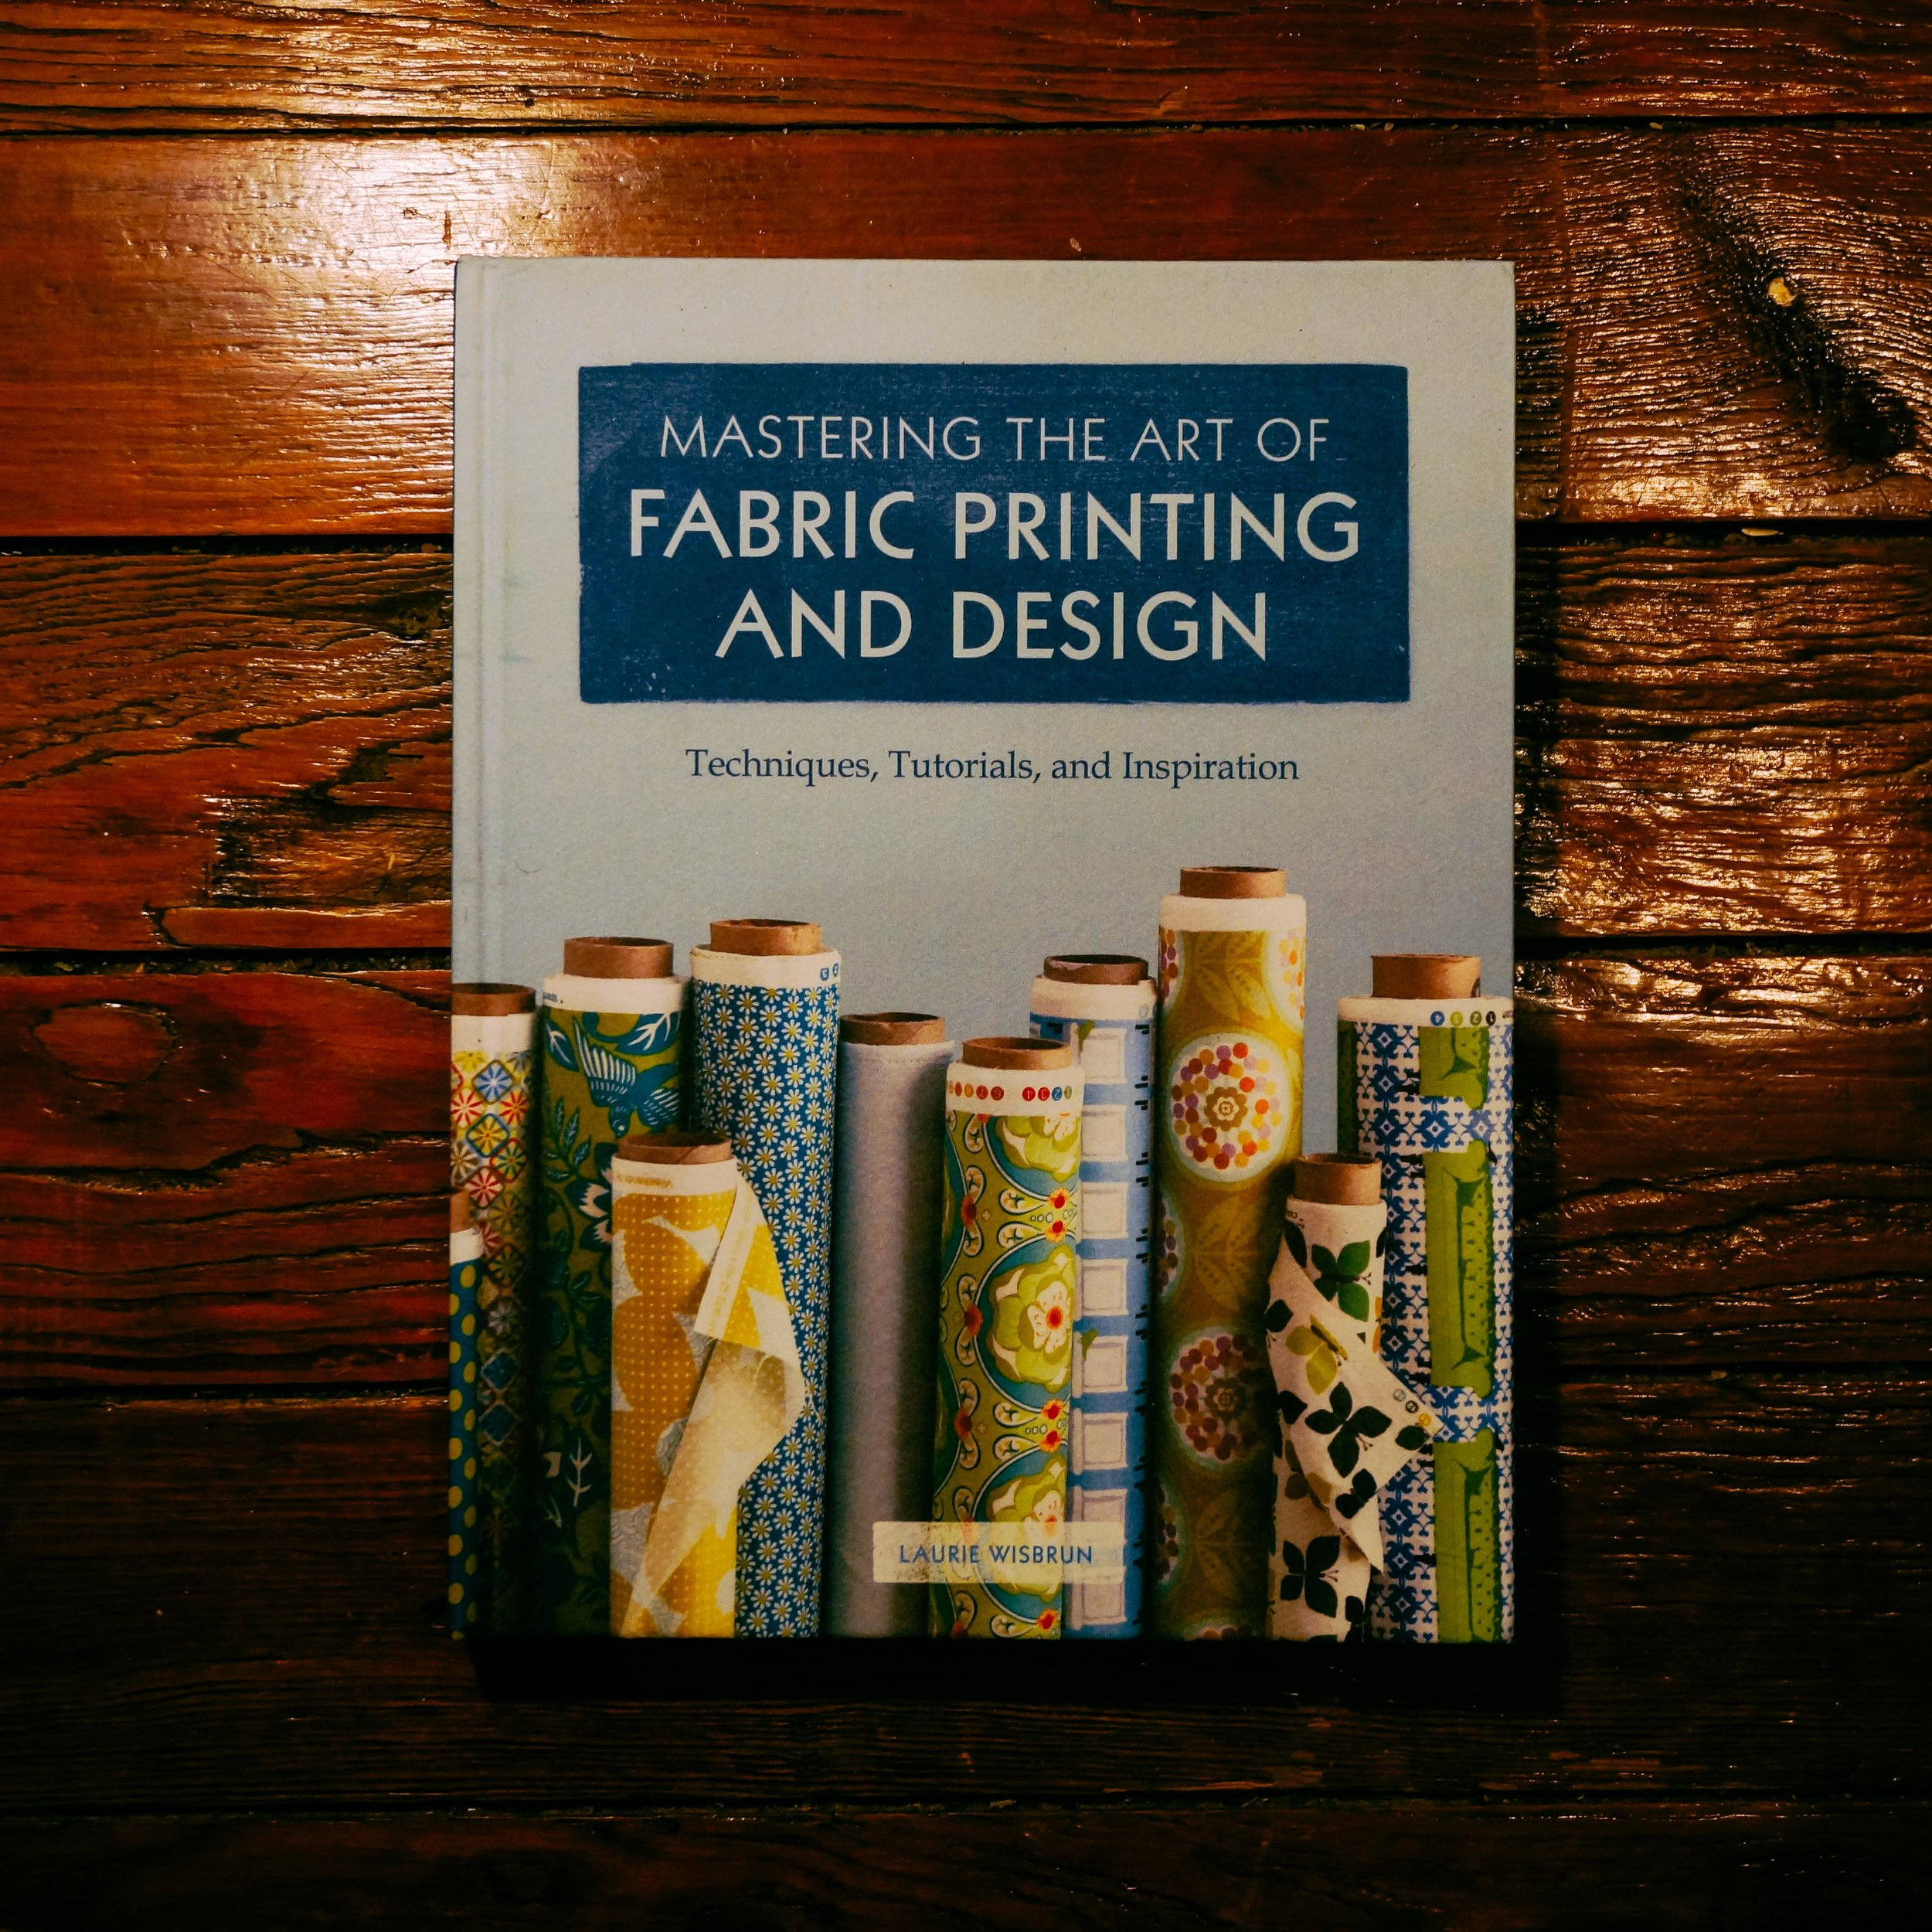 This authoritative guide outlines everything readers need to know to create gorgeous fabrics. There's nothing like it on the market! Collected within are step-by-step tutorials for designing patterns (both digitally and by hand), a comprehensive section on printing techniques—including digital printing, screen printing, stenciling, block printing, and resist dyeing—and even insider tips for developing a collection and bringing it to the marketplace. Beautifully illustrated with swatches of exquisite fabrics and hundreds of photos, and featuring interviews with established designers such as Skinny laMinx, Ink & Spindle, and Julia Rothman,  Mastering the Art of Fabric Printing and Design  is a key resource for anyone looking to learn the basics, expand their skill set, or find design inspiration.   Get it    Here